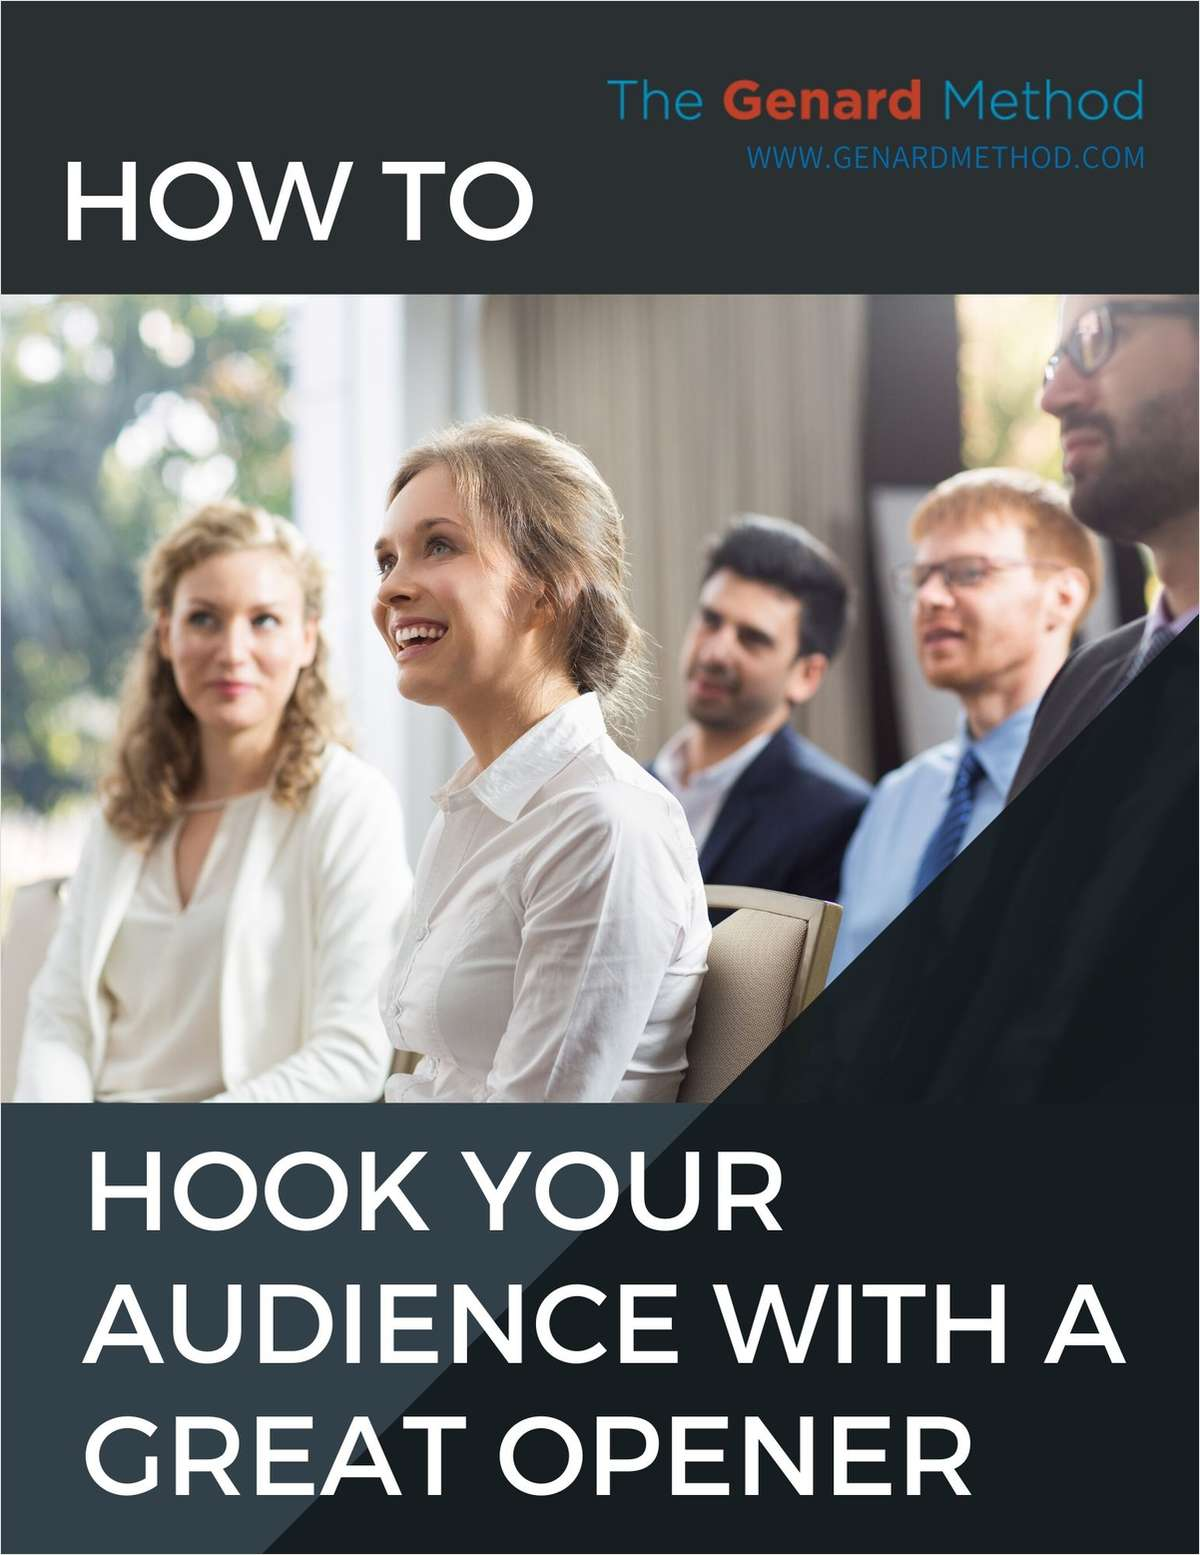 How to Hook Your Audience with a Great Opener